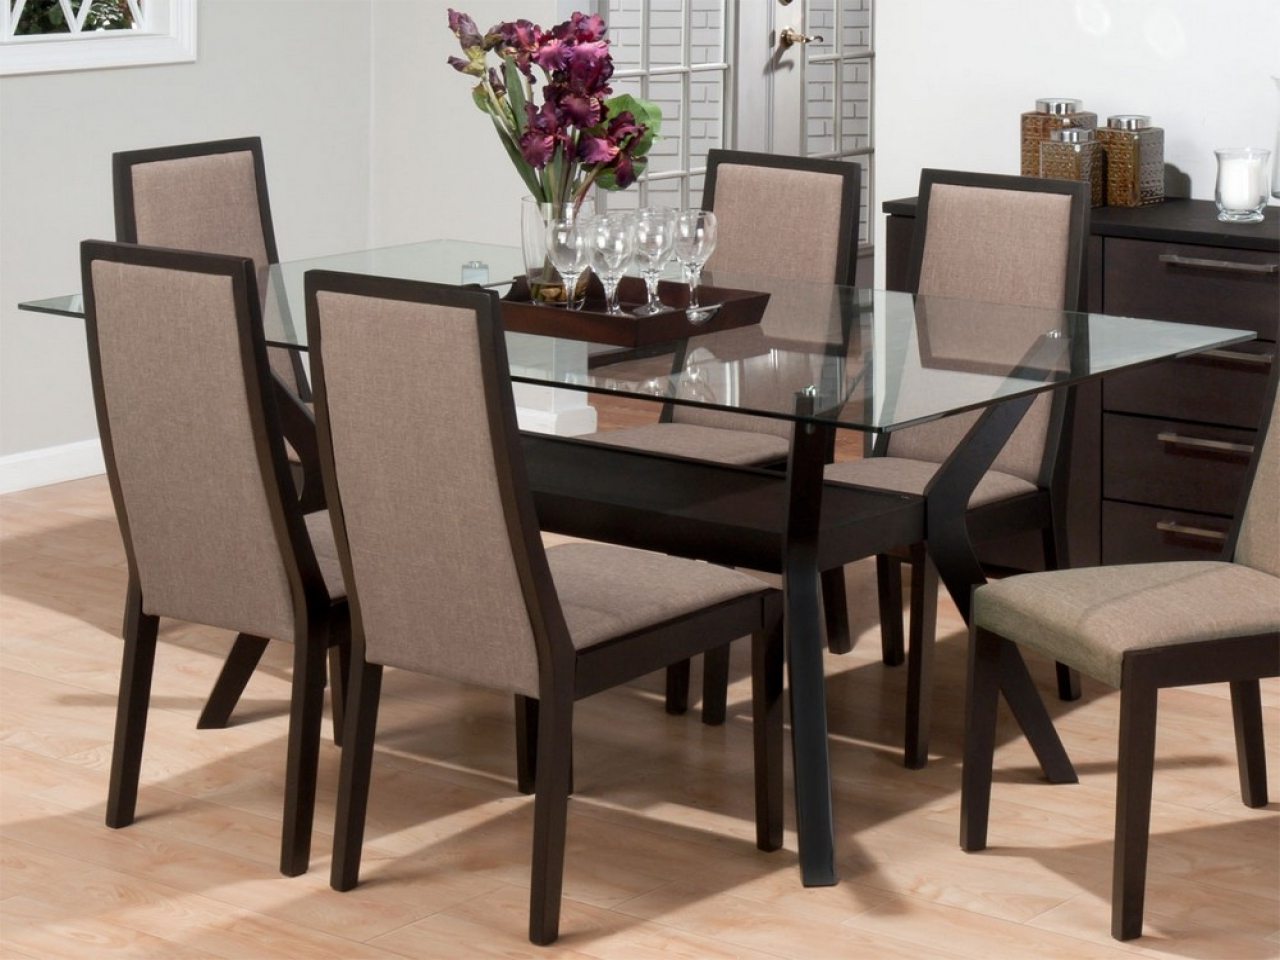 Rectangular Glasstop Dining Tables with Well-liked Rectangular Glass Top Dining Tables Room